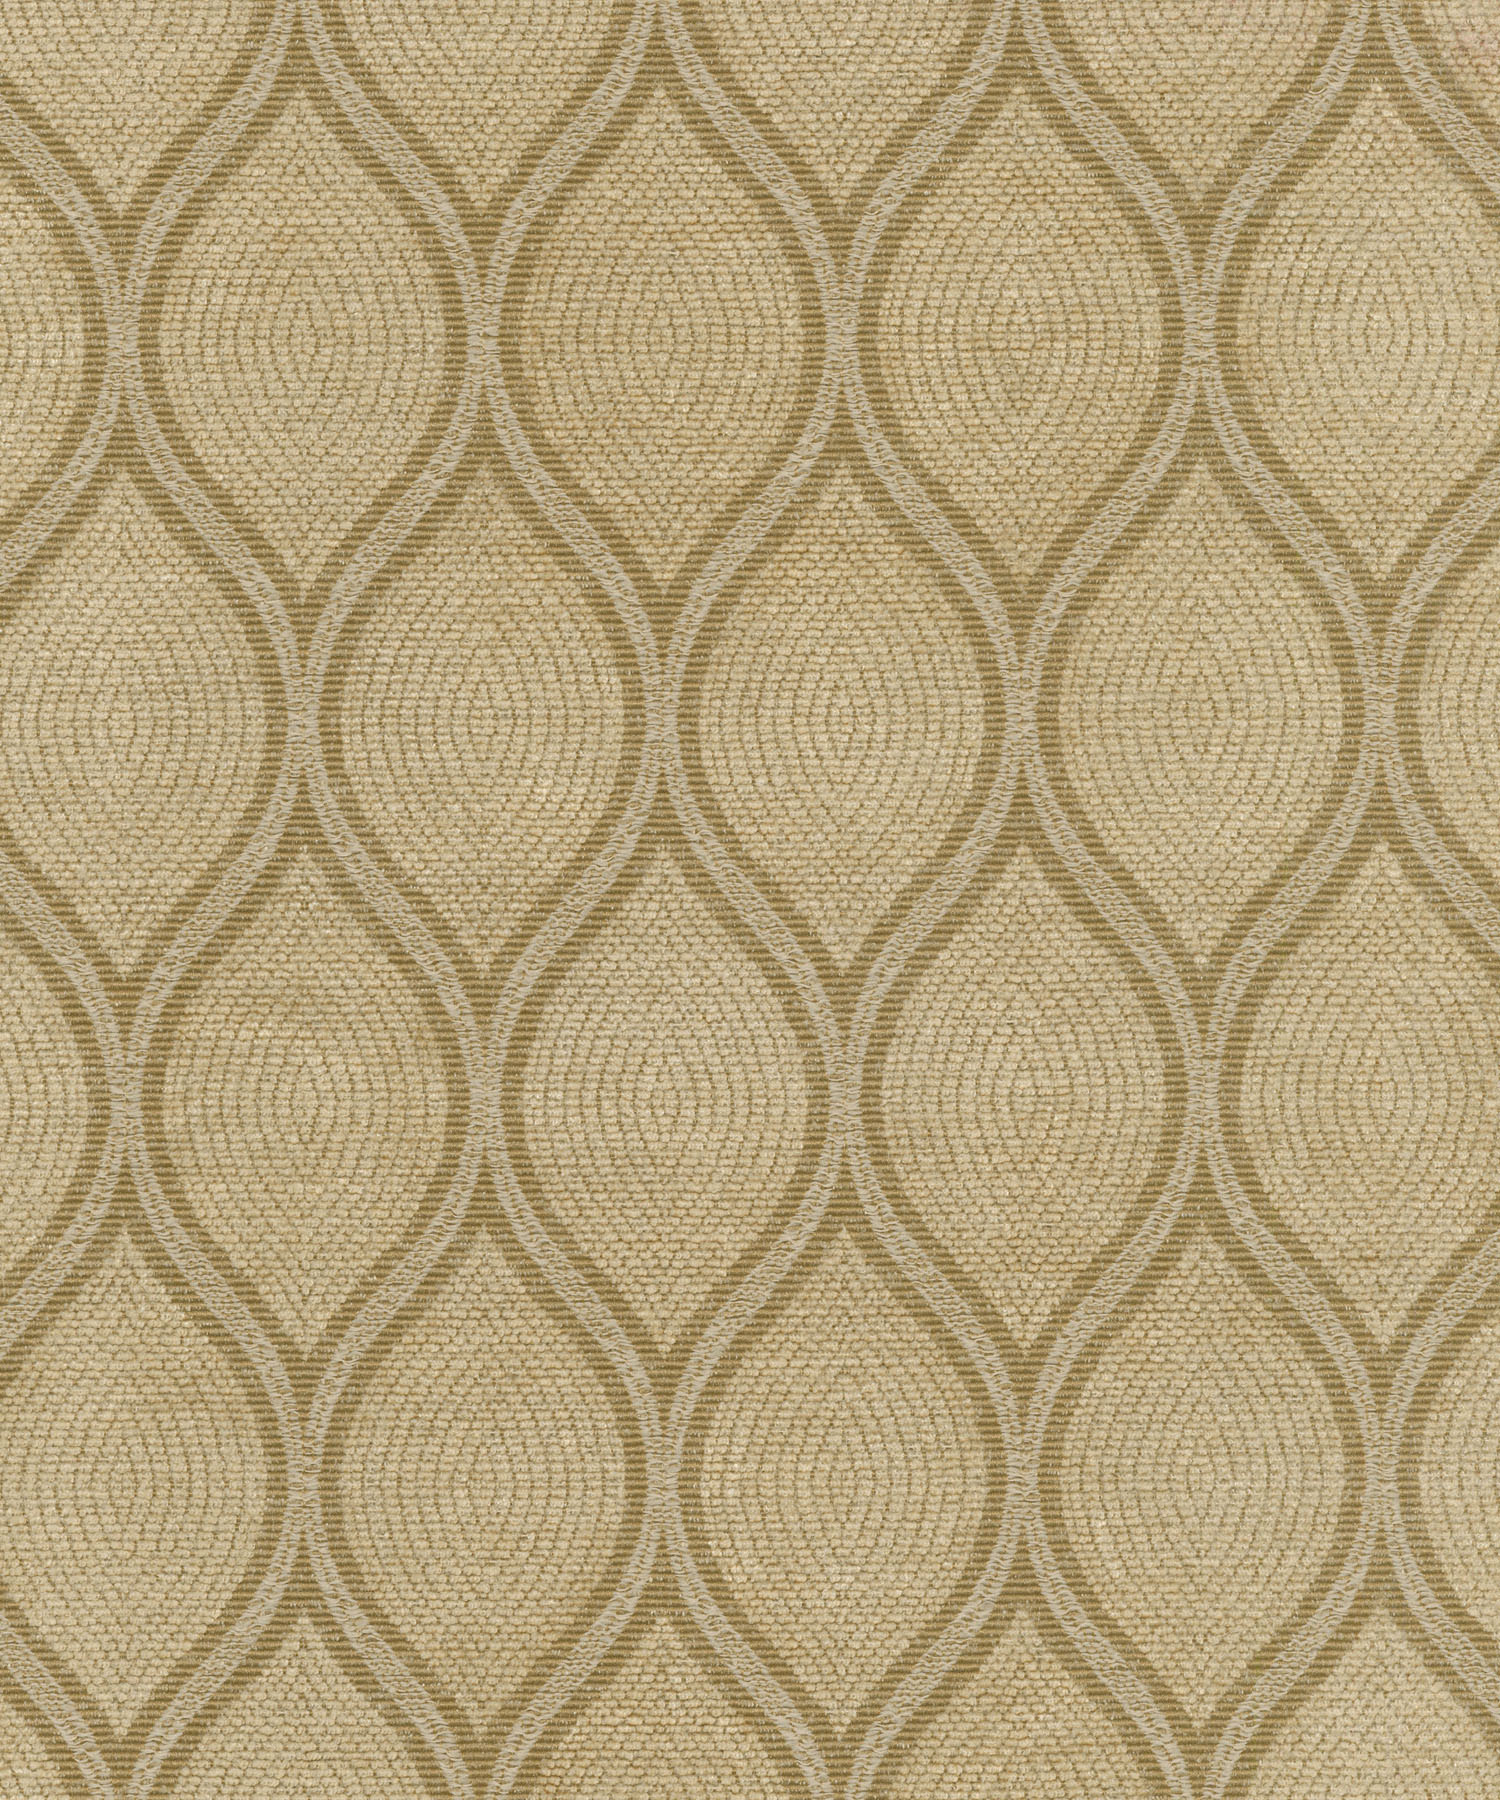 "Home Decor 8""x8"" Fabric Swatch-IMAN Home Malta Mica"